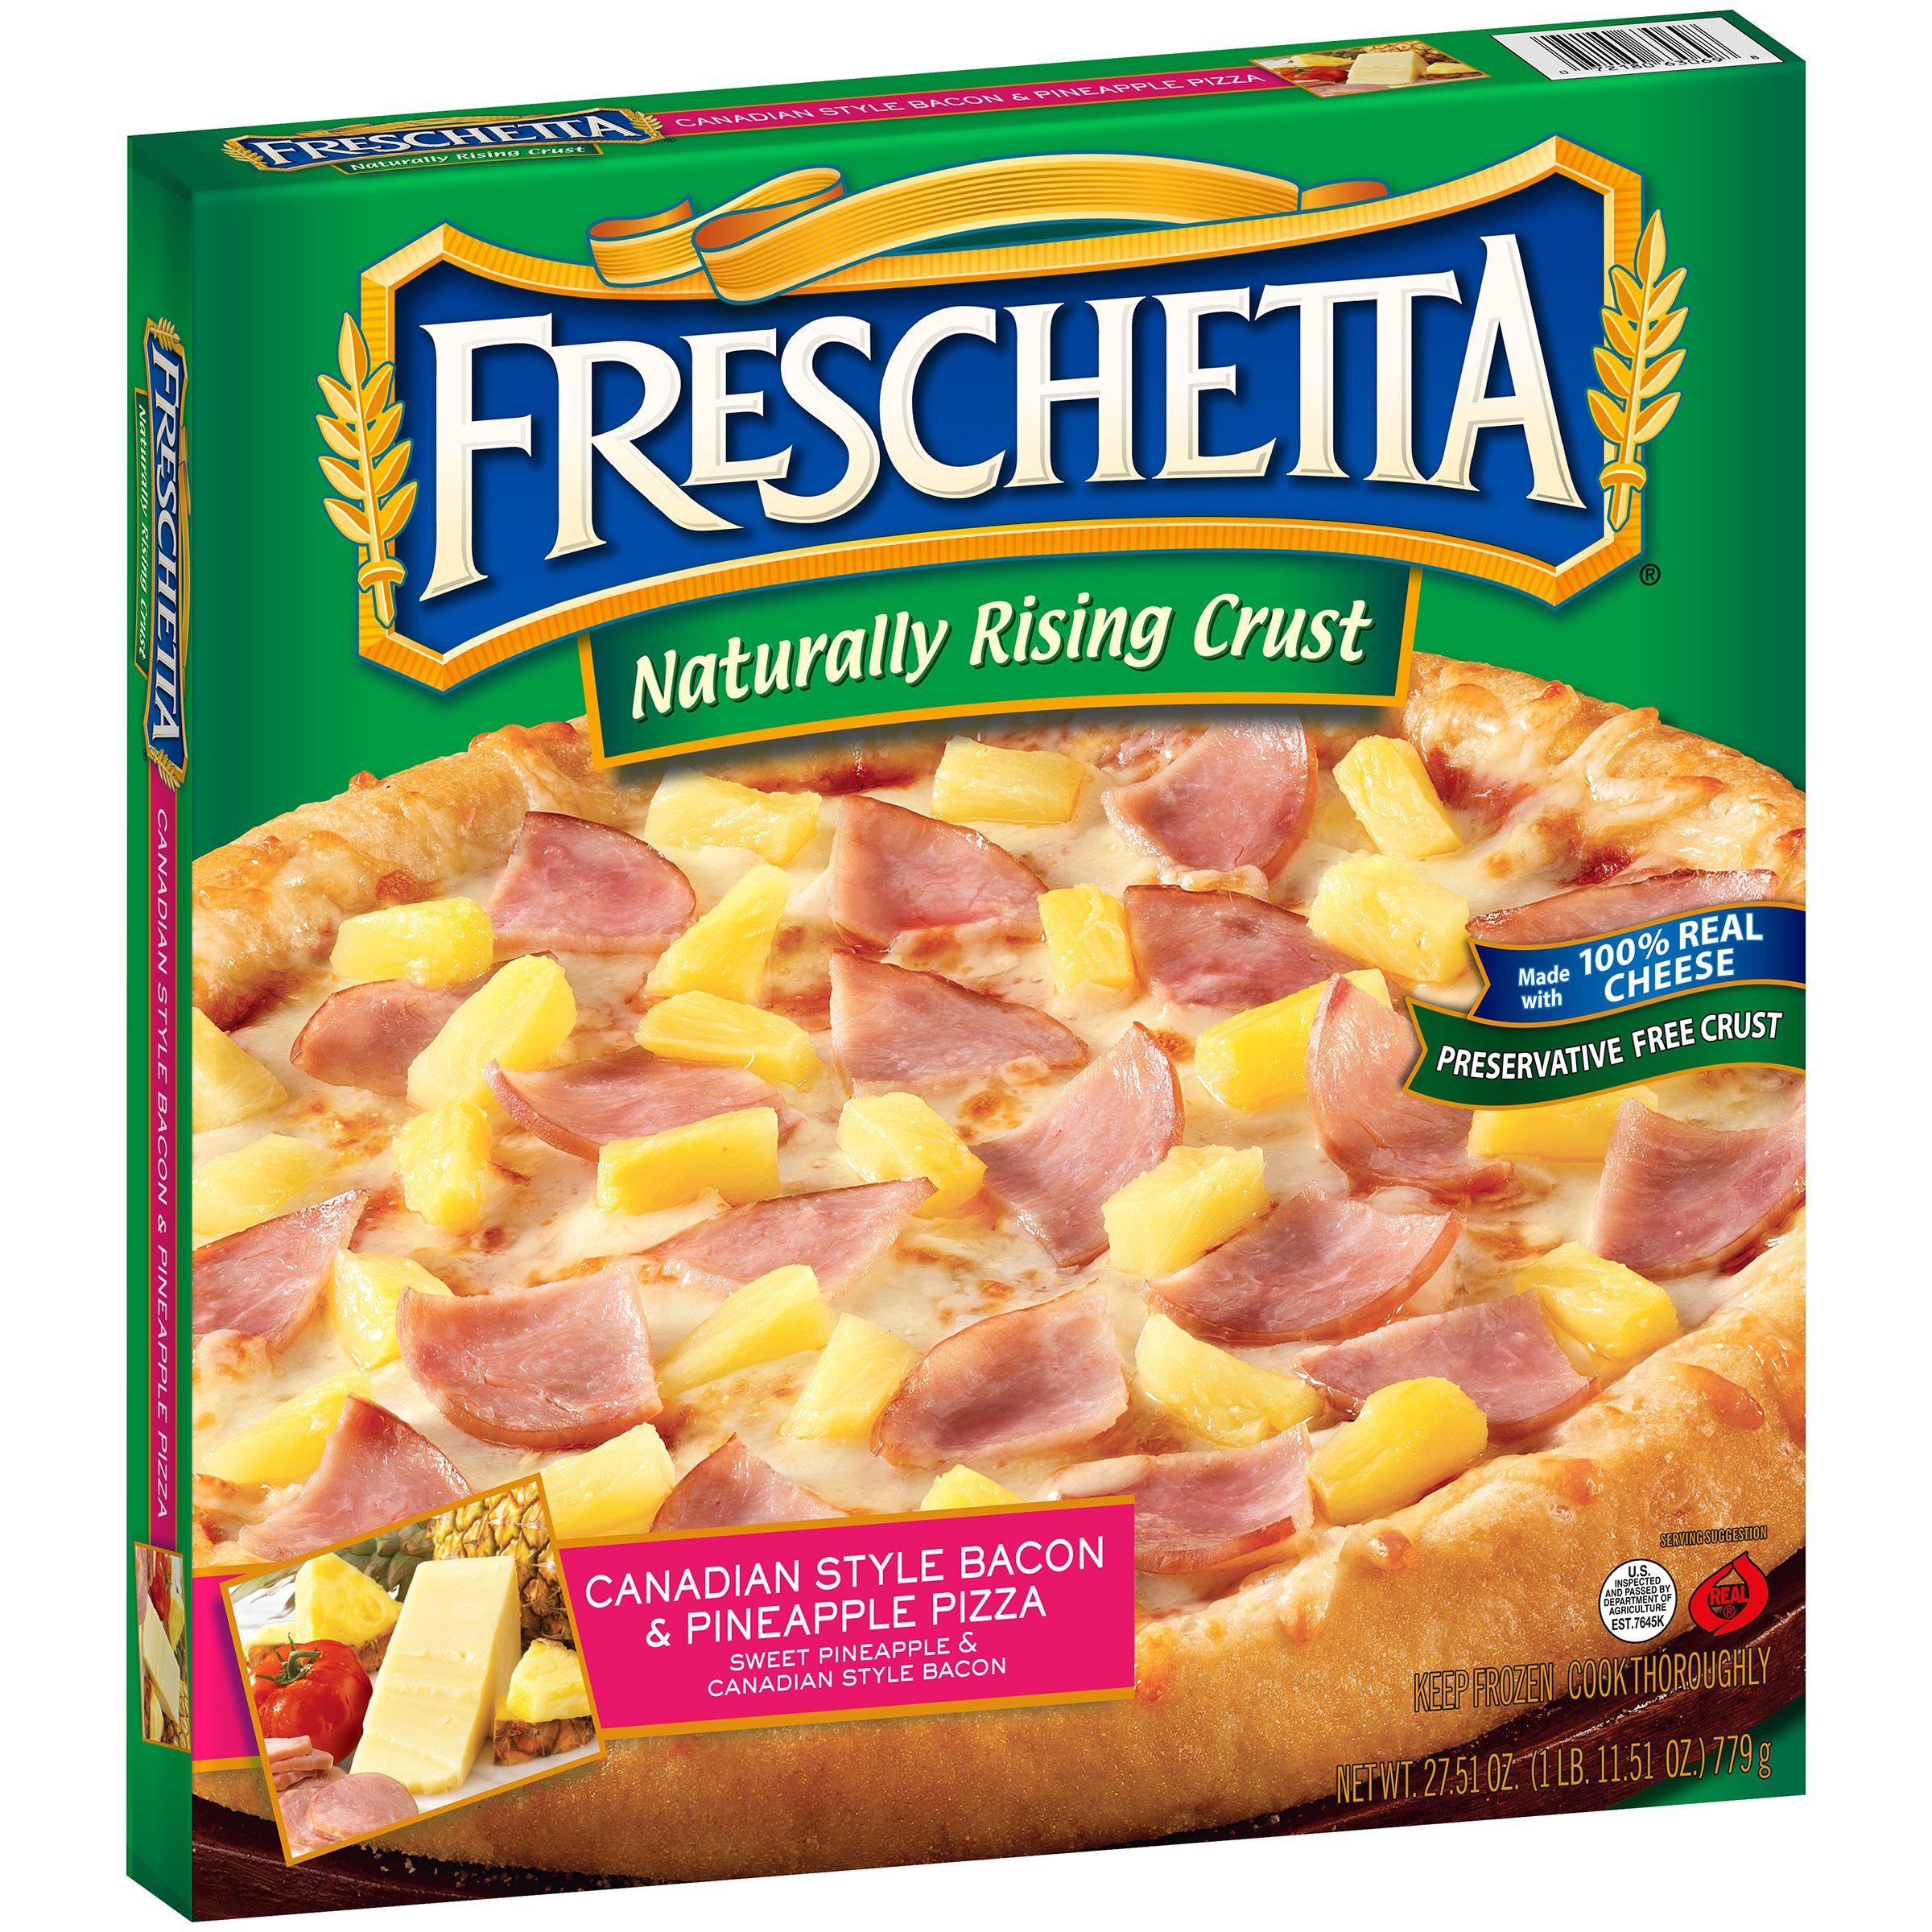 Freschetta® Naturally Rising Crust Canadian Style Bacon & Pineapple Pizza 27.51 oz. Box